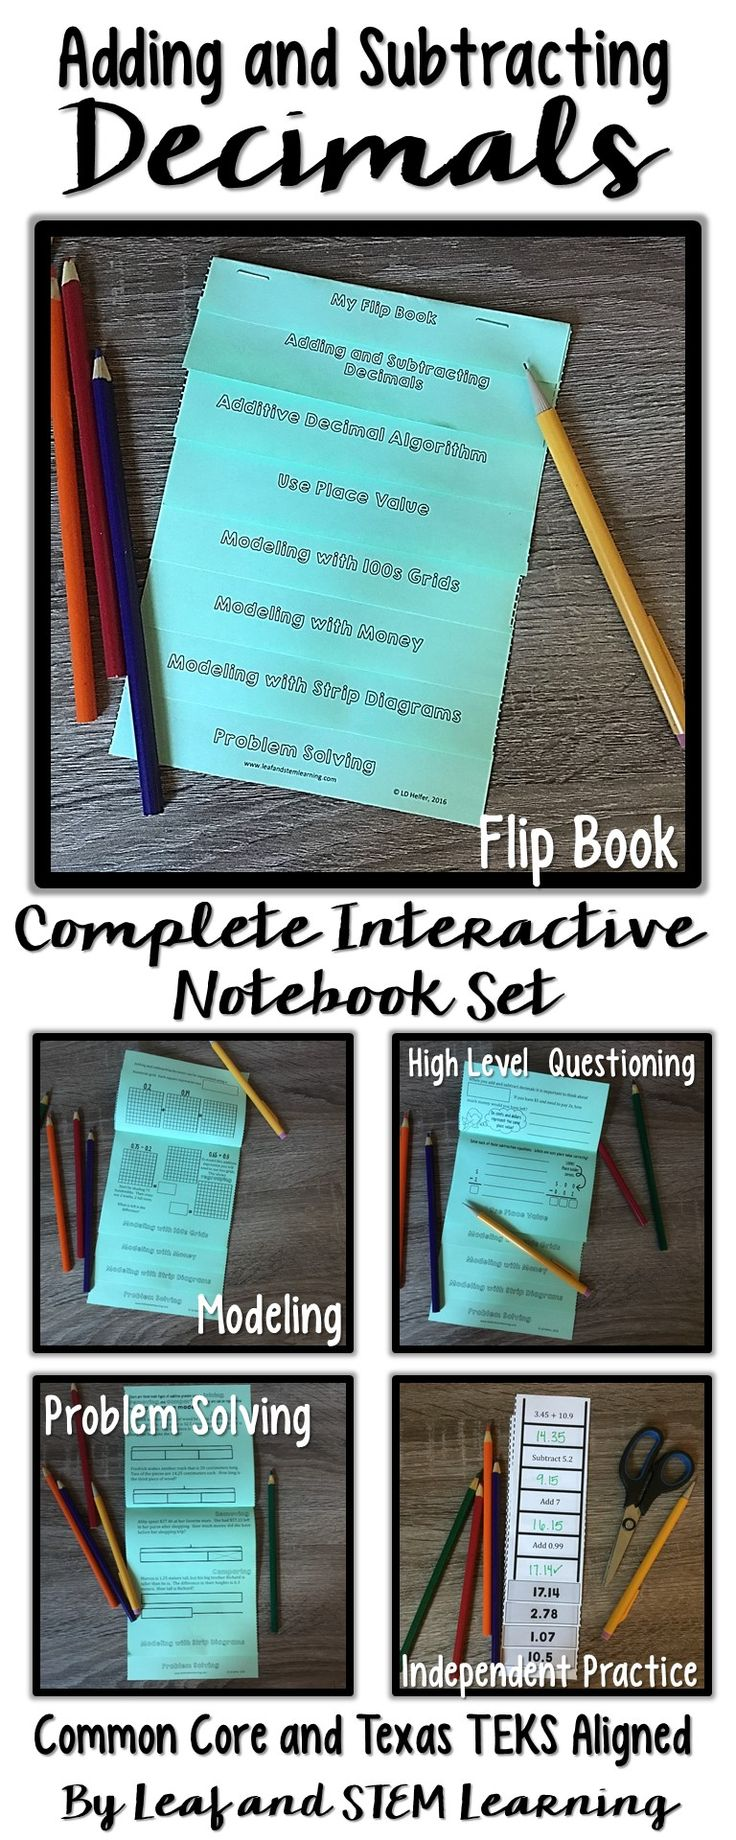 Introduce, practice, and assess decimal addition and subtraction using this interactive flip book and math journal set. Two versions are included to align to the Texas TEKS and Common Core fifth grade math standards.   All pieces are designed to fit perfectly in your students' notebooks or composition books and include a flip book, a practice activity, and a five question, test-prep style formative assessment.  By www.leafandstemlearning.com